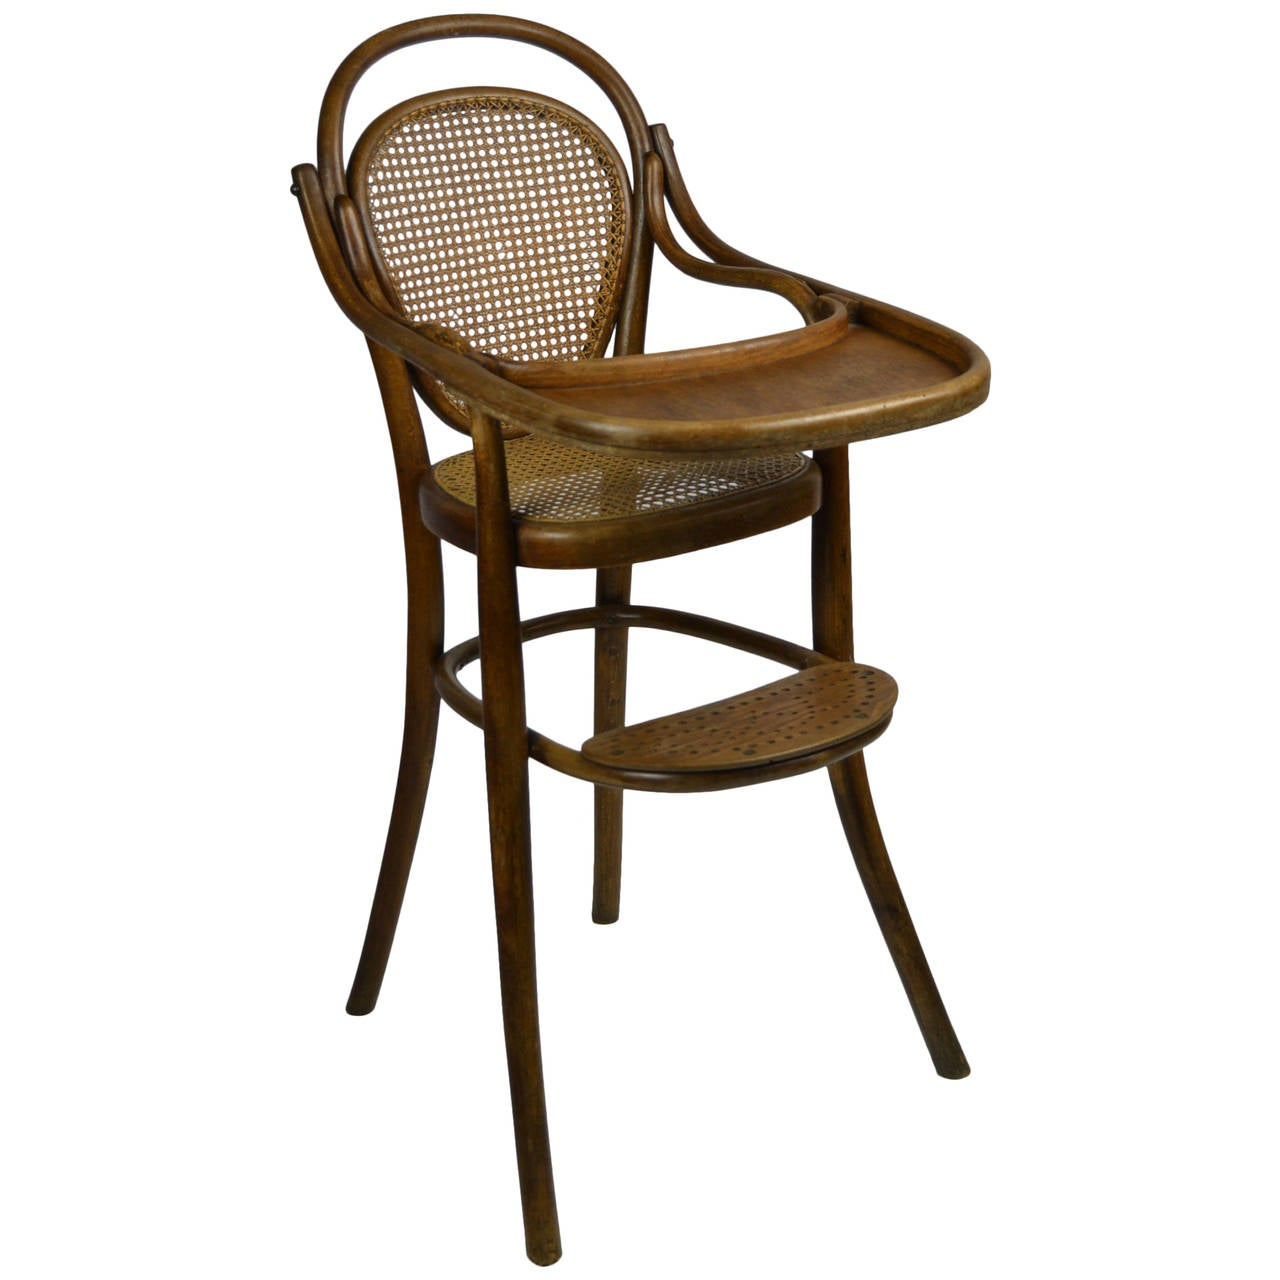 Antique Thonet Childrens Chair At 1stdibs